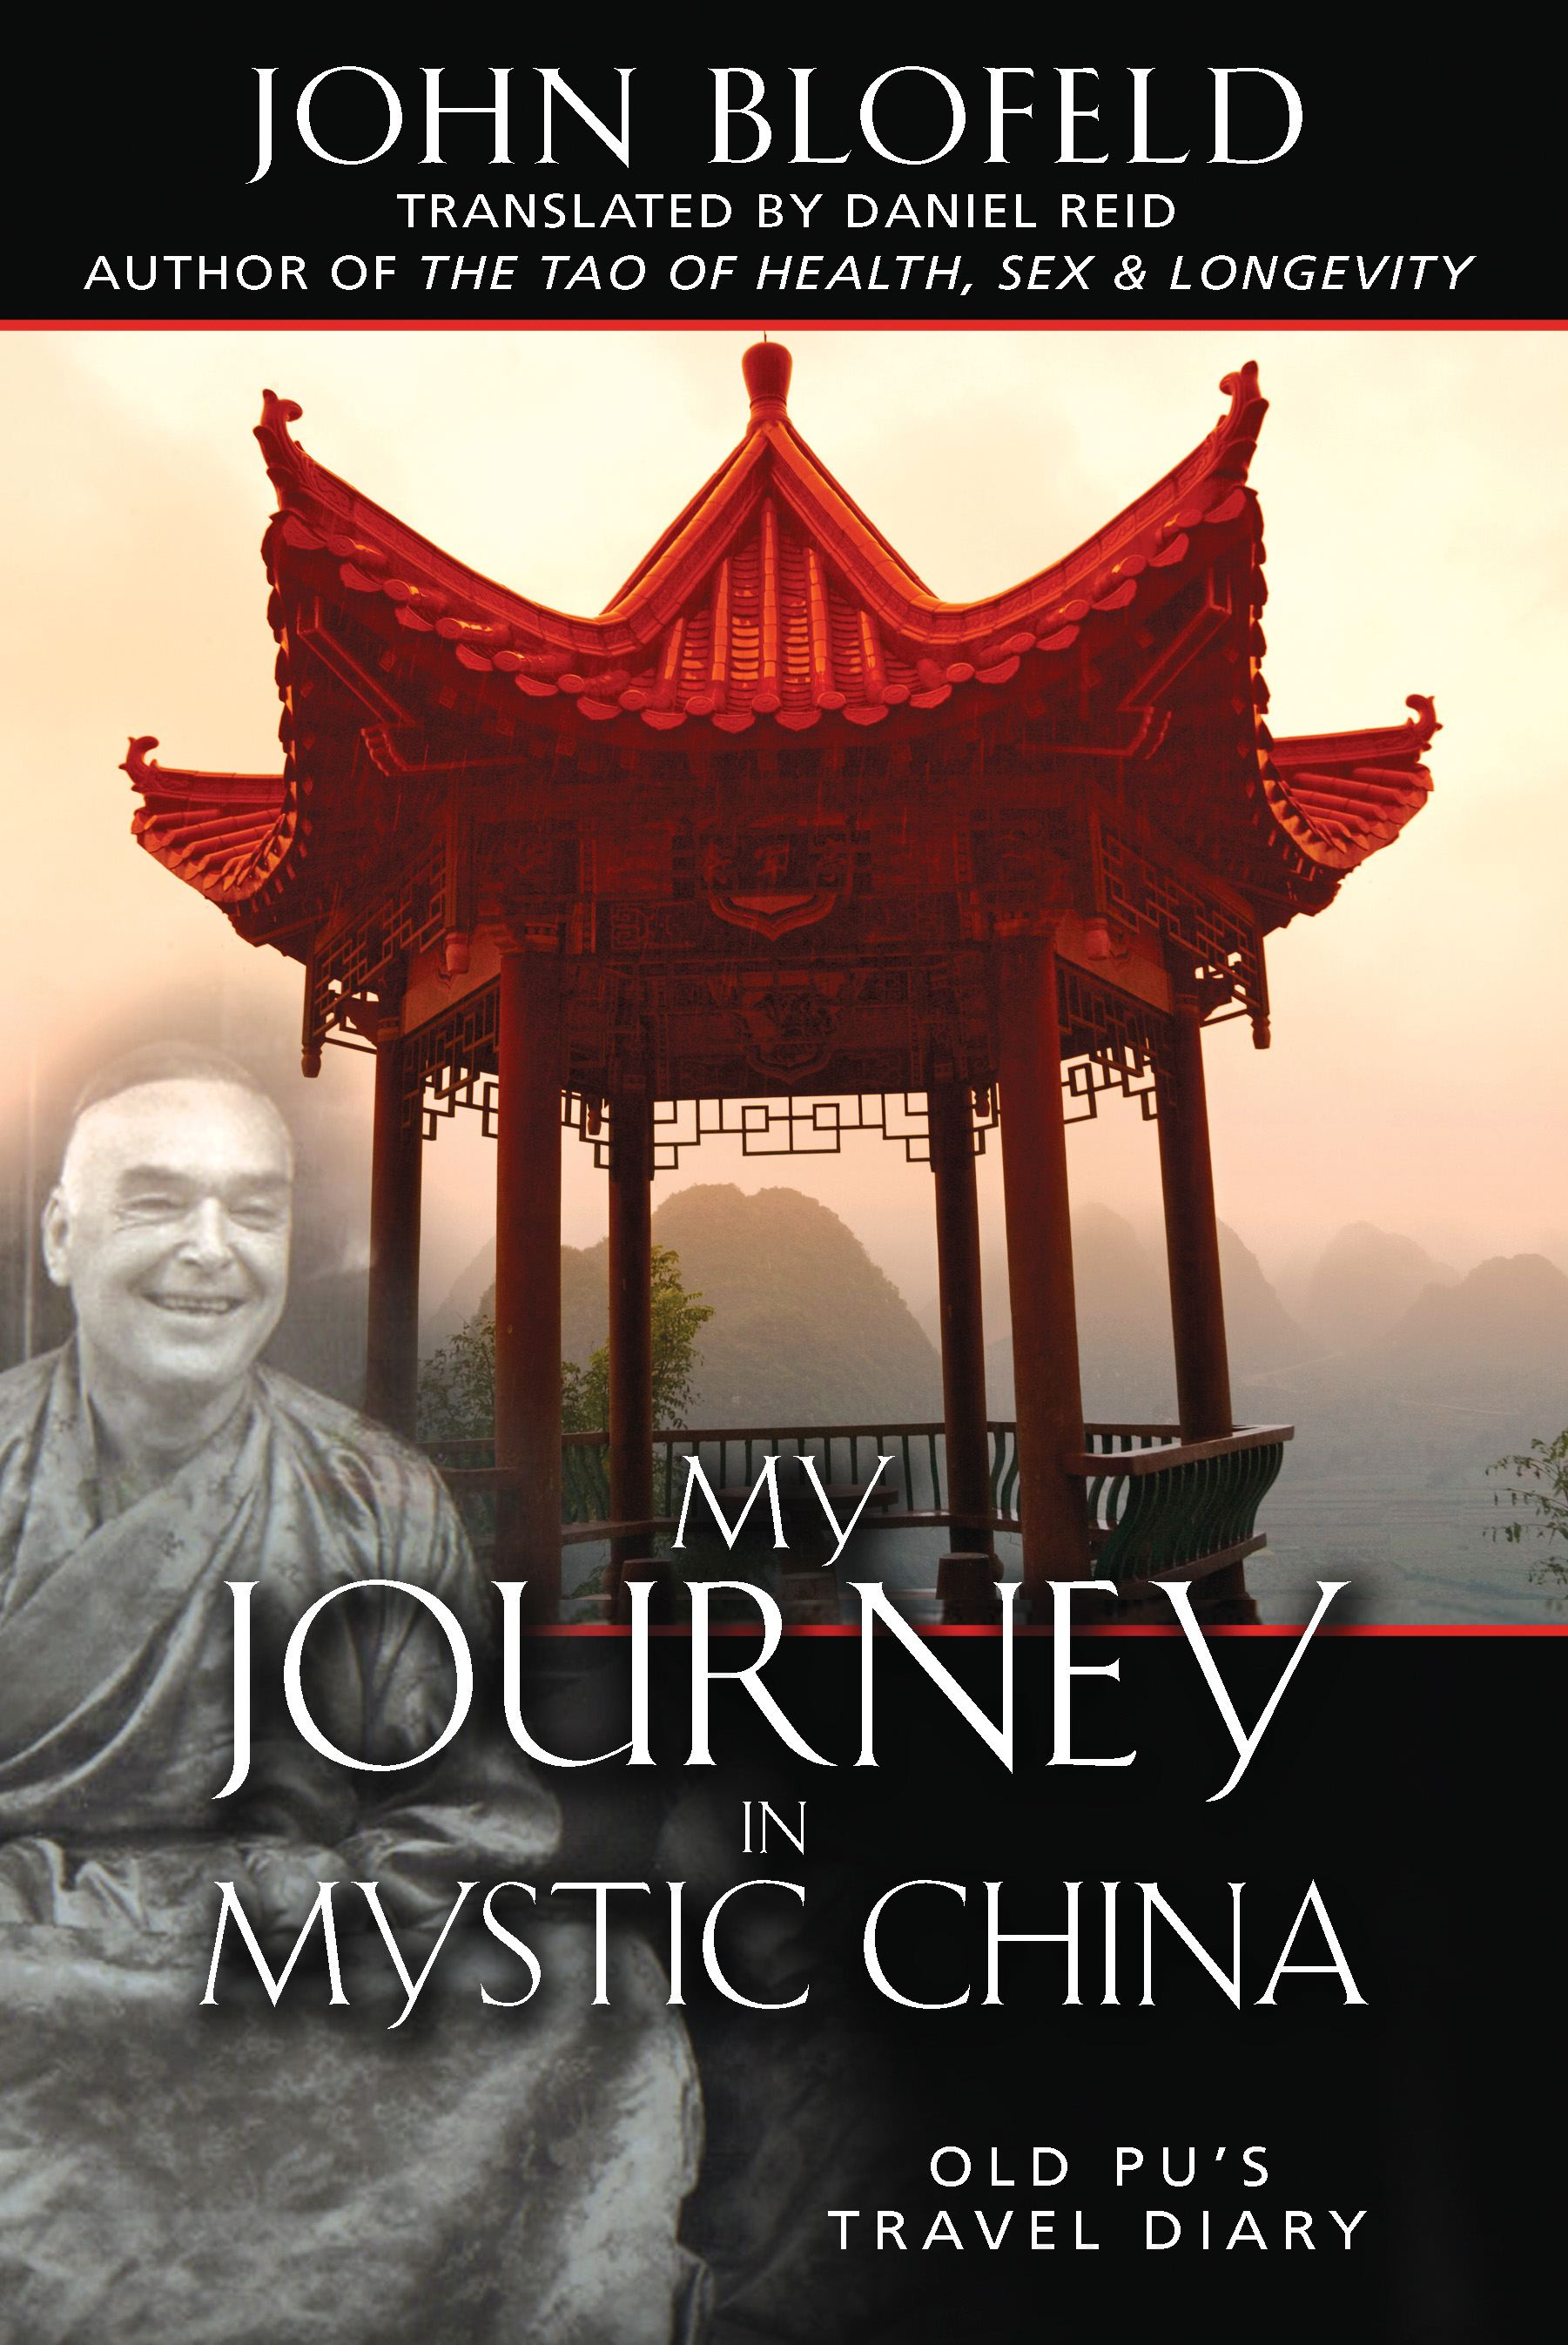 My journey in mystic china 9781594771576 hr